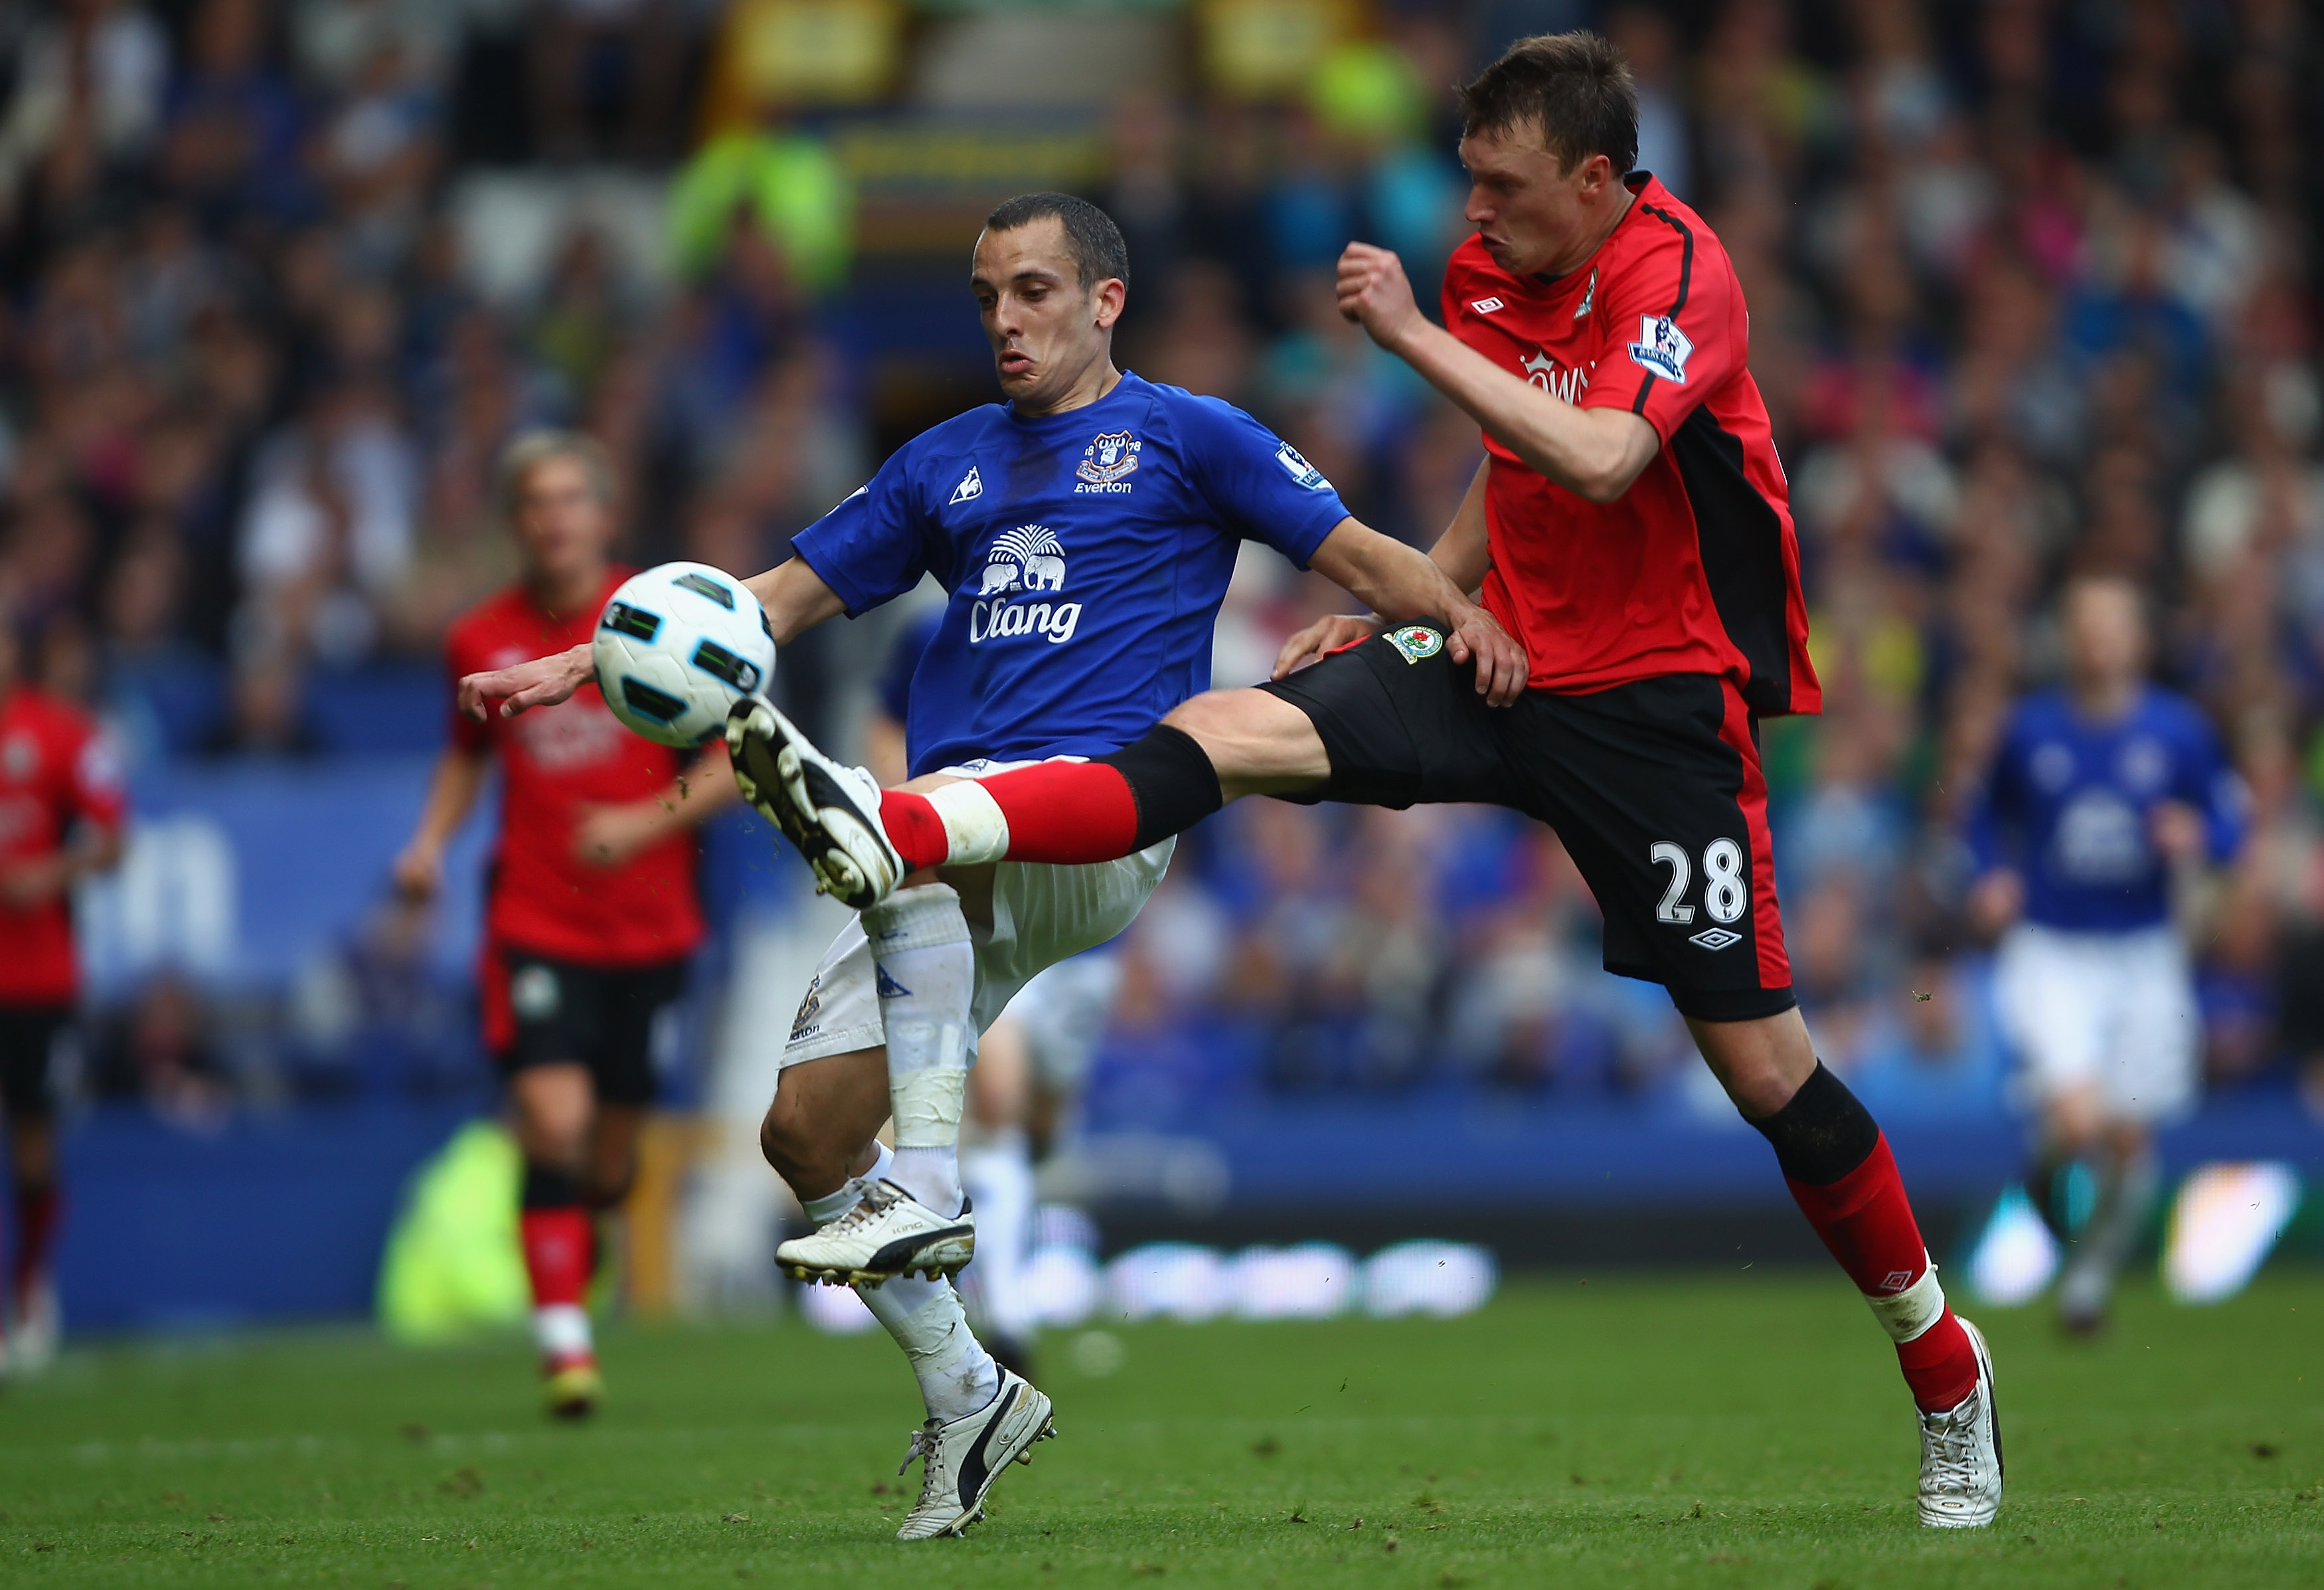 LIVERPOOL, ENGLAND - APRIL 16:  Leon Osman of Everton in action with Phil Jones of Blackburn Rovers during the Barclays Premier League match between Everton and Blackburn Rovers at  Goodison Park on April 16, 2011 in Liverpool, England.  (Photo by Clive B